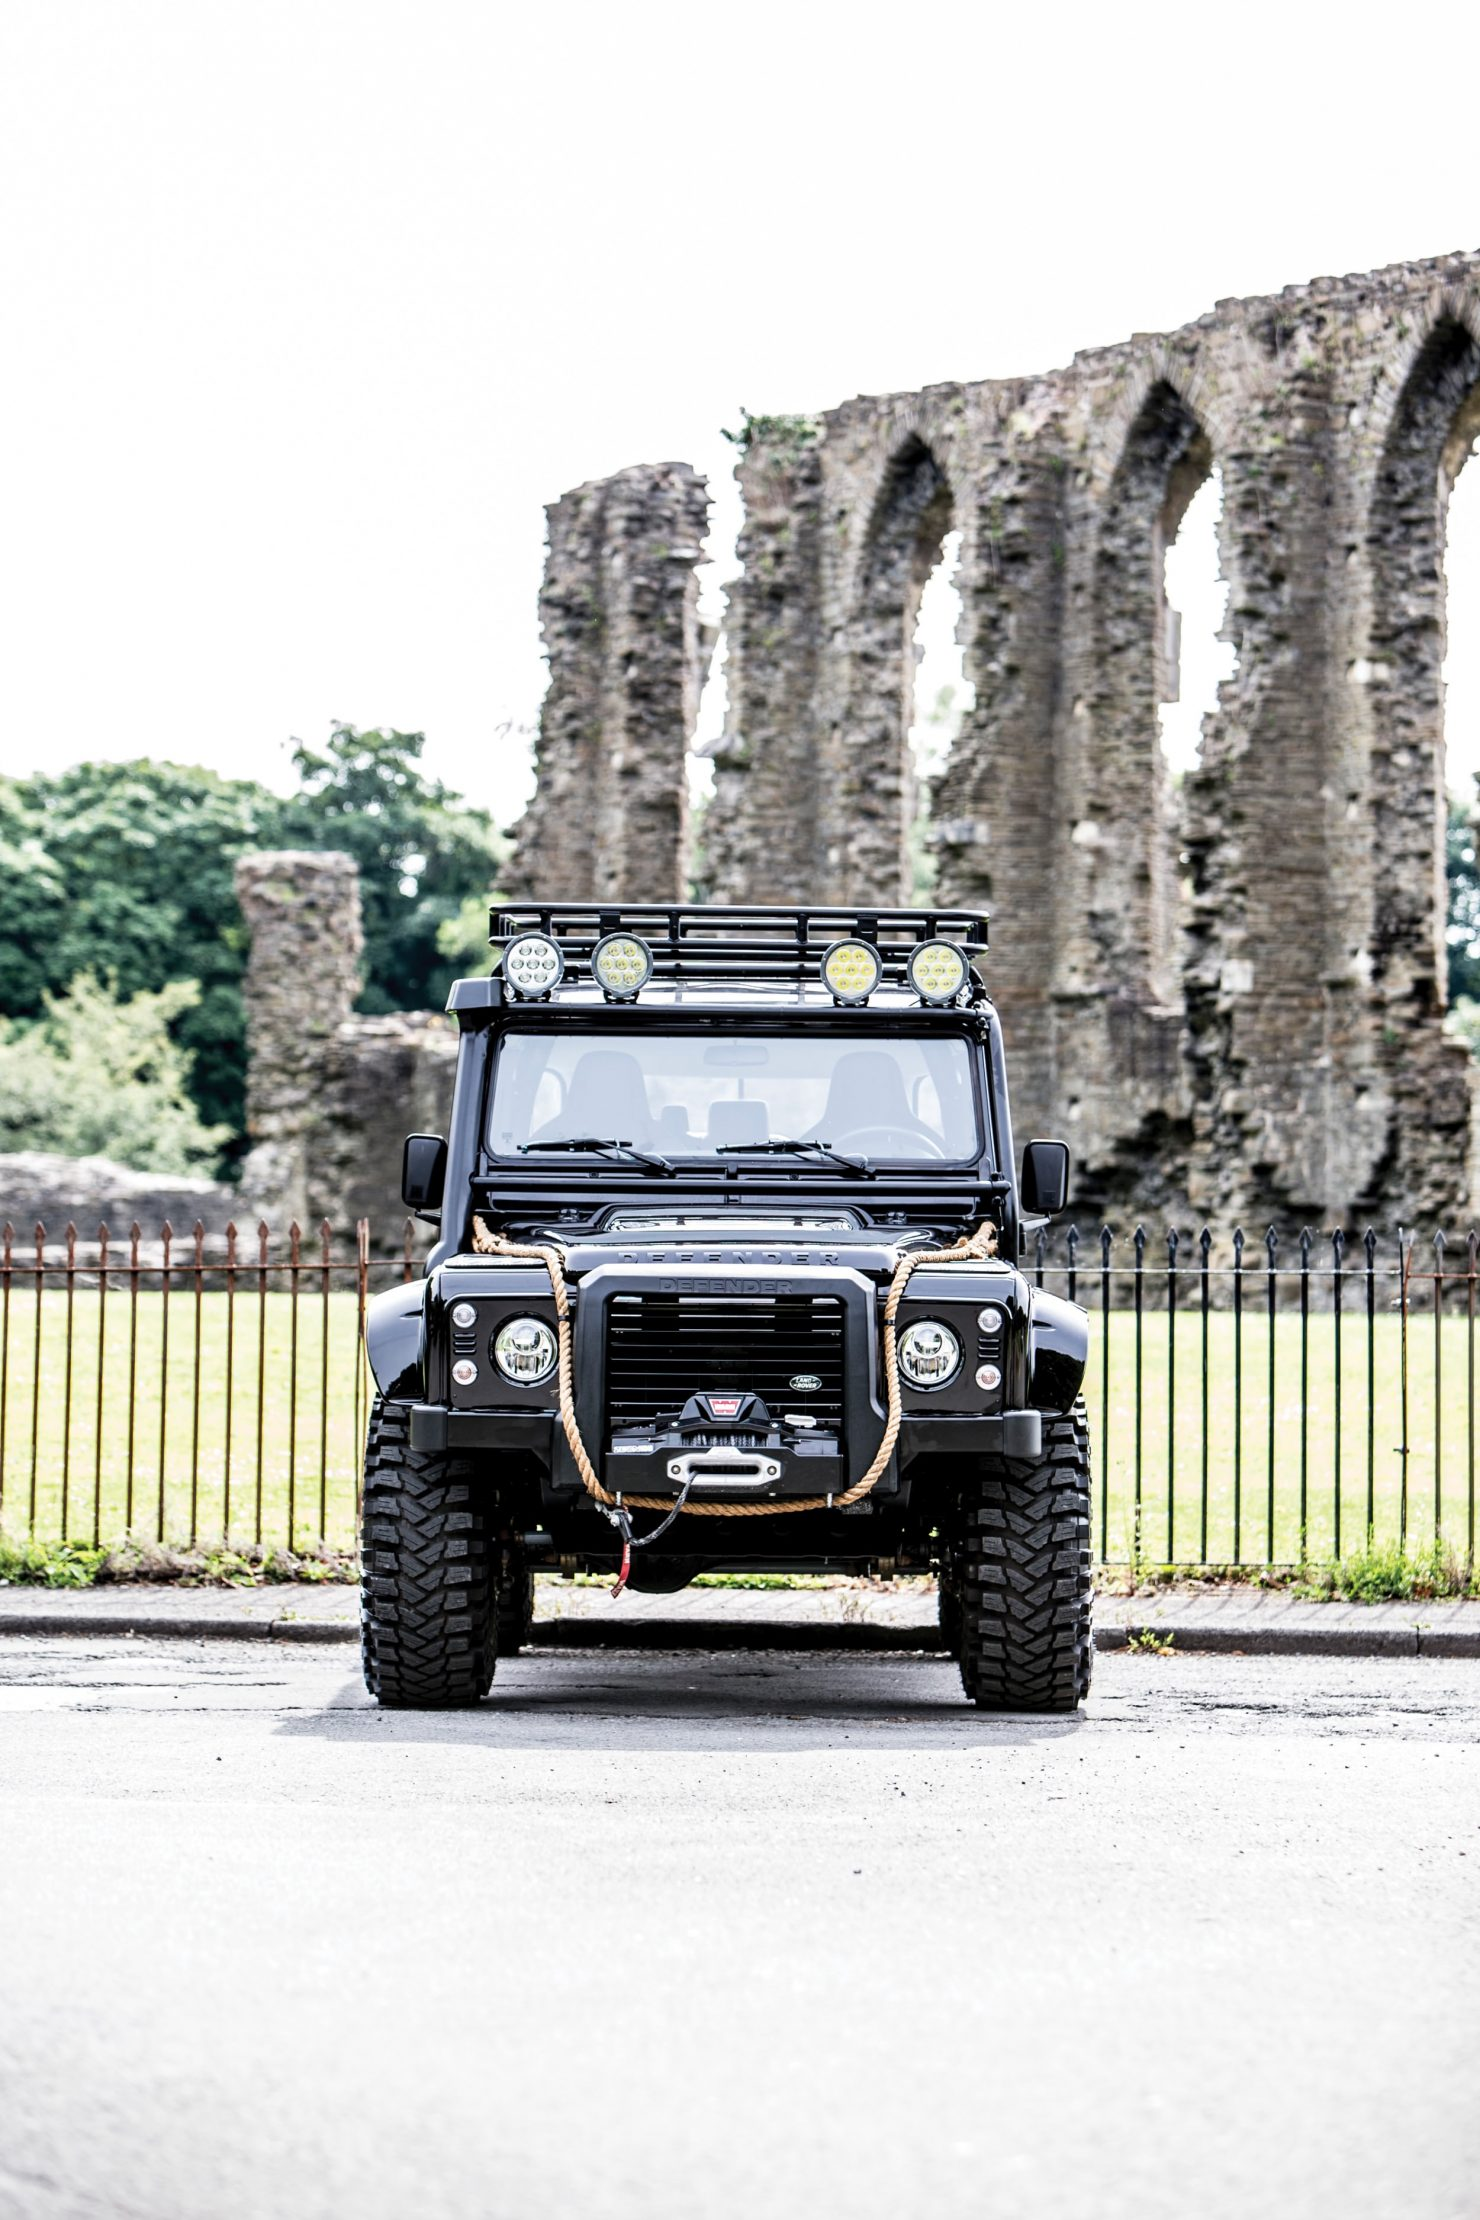 james bond spectre land rover defender svx 7 1480x2220 - Ex-James Bond Spectre - Land Rover Defender SVX